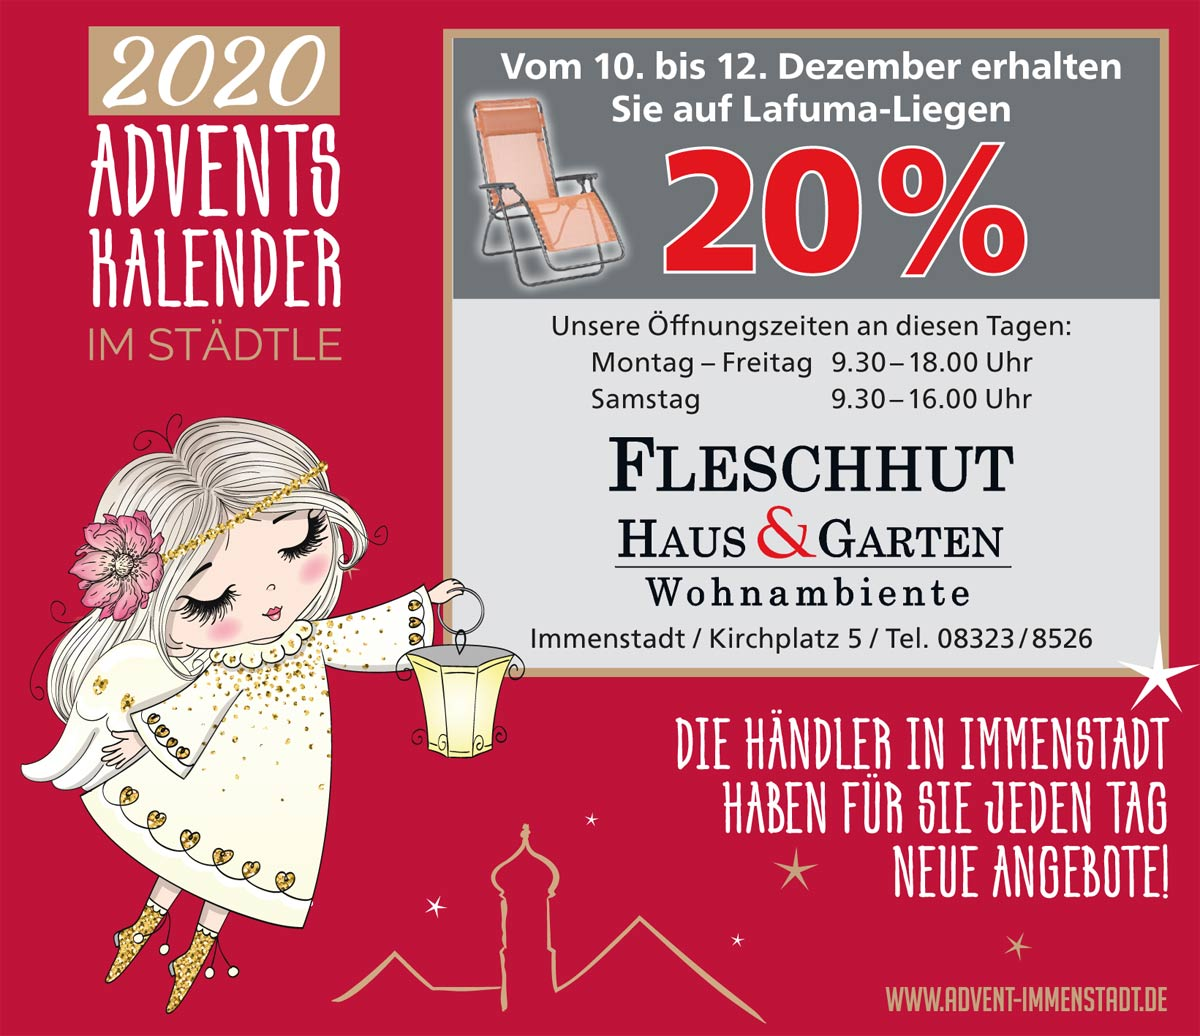 Adventskalender Fleschhut am 10.12.2020